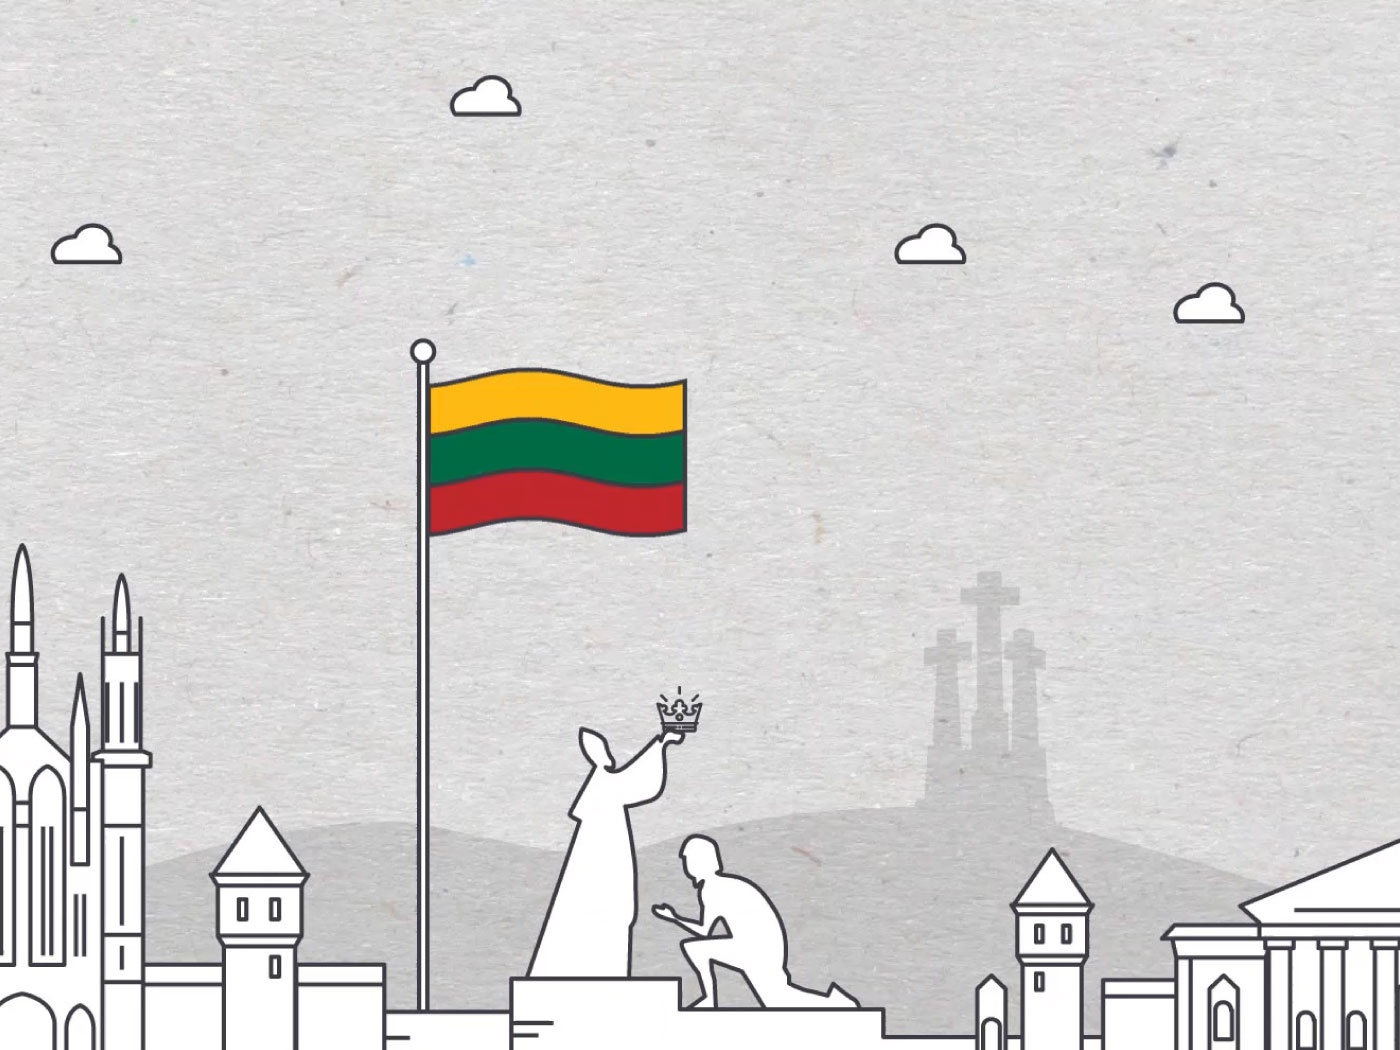 Illustration for Statehood Day in Lithuania flatdesign illustration illustration art illustrator lithuania